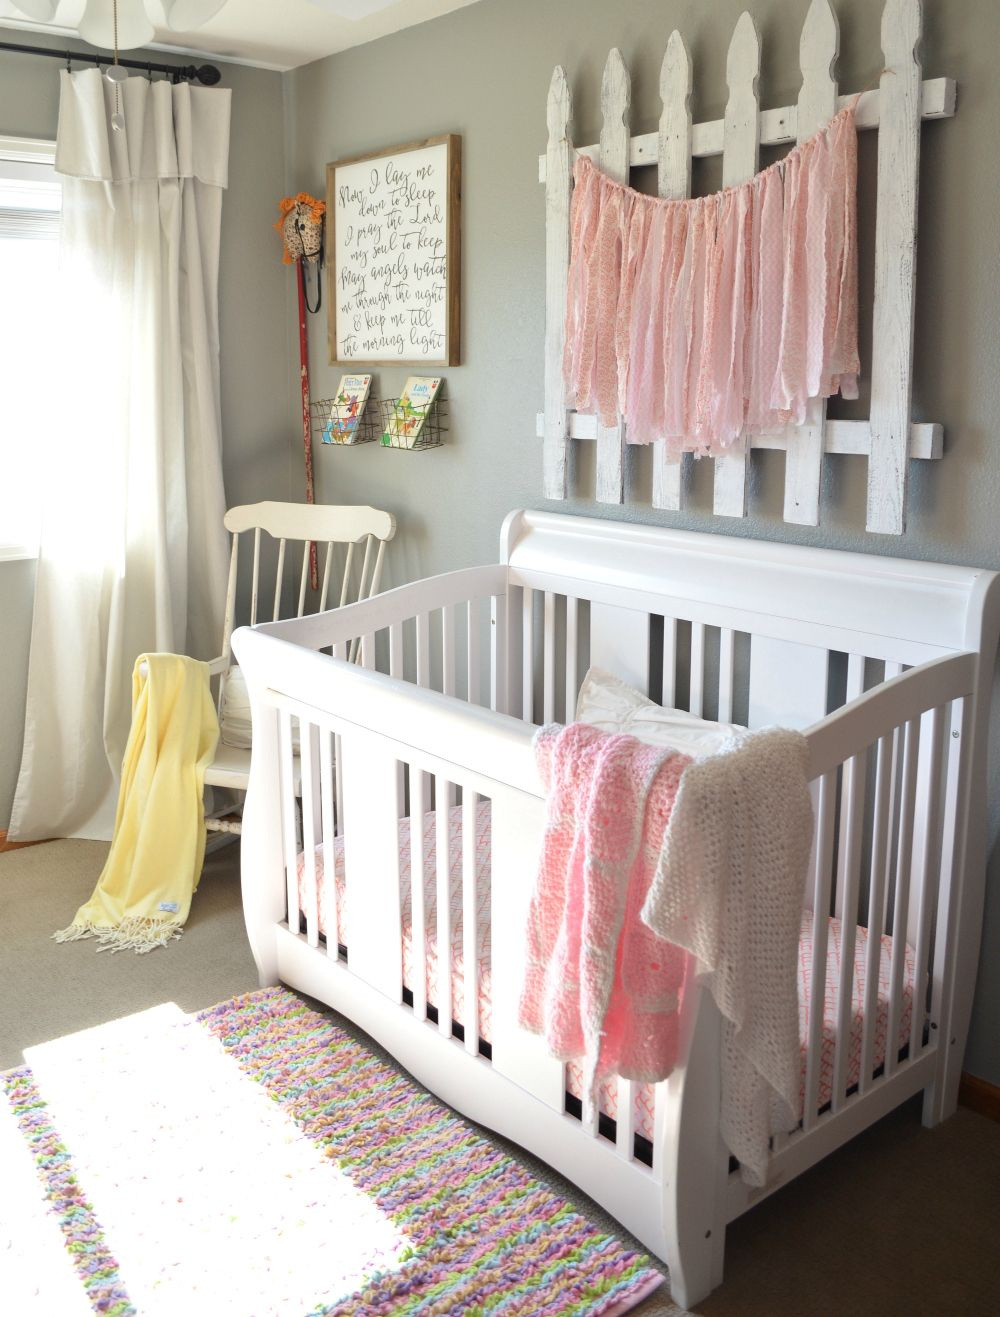 Baby Boy Nursery Tour: Home Decor - Home Tour